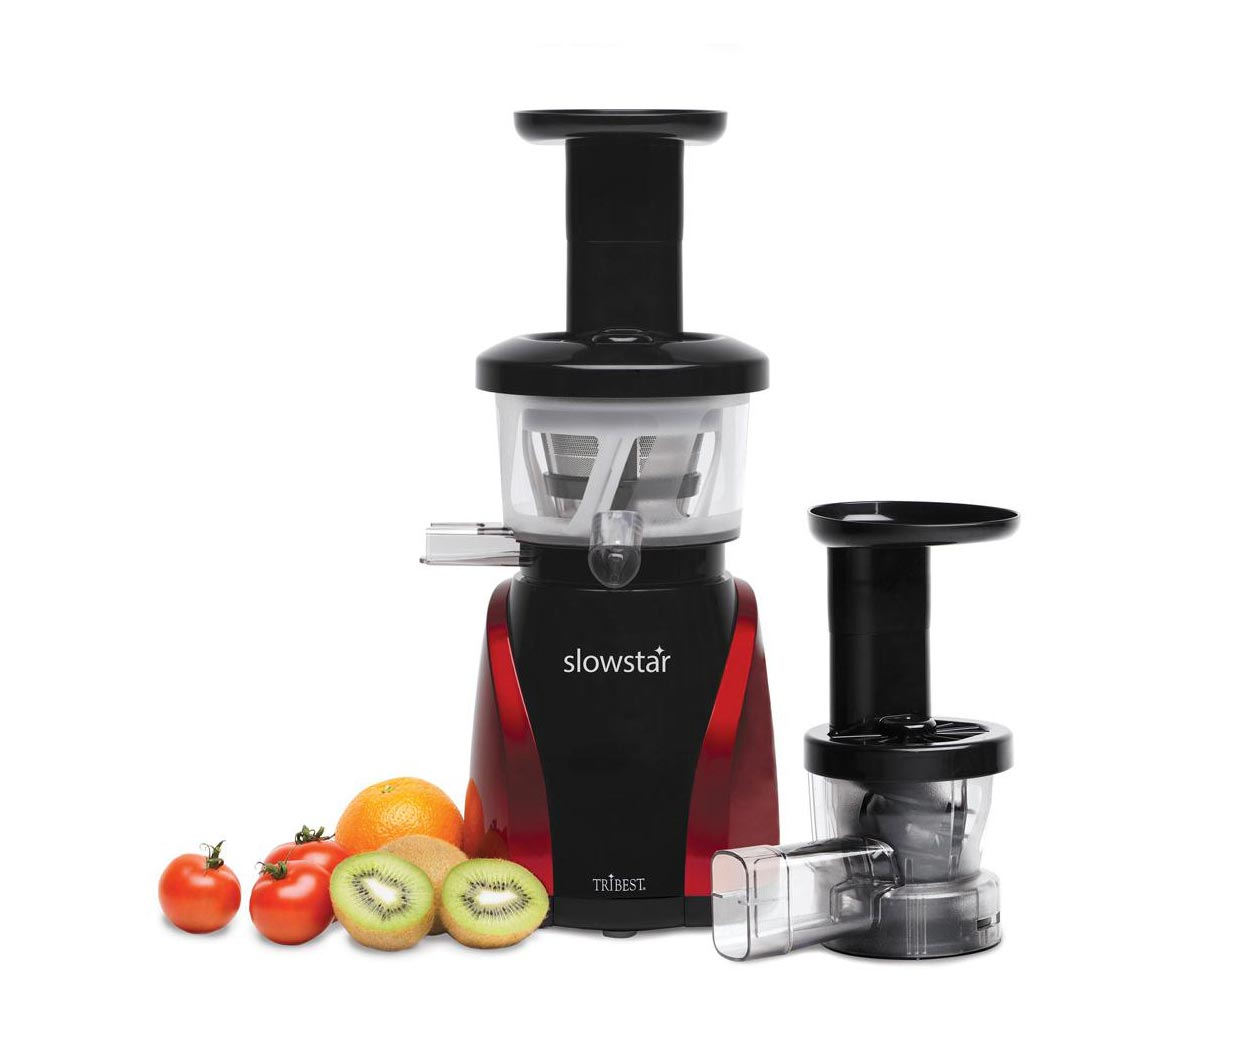 Is A Slow Juicer Better : Tribest Slowstar Juicer Review. Is this Tribest juicer the ...